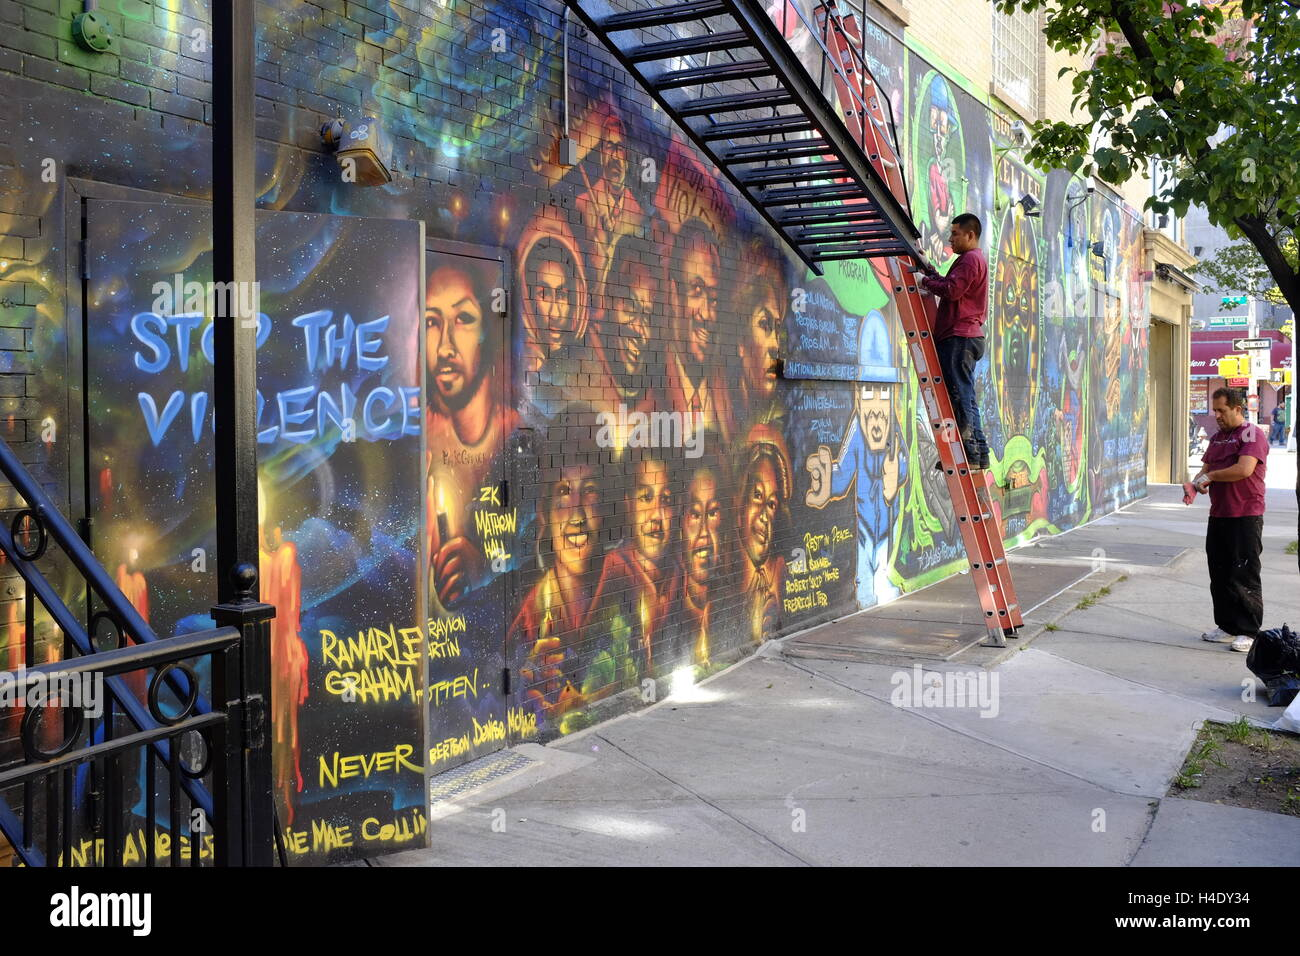 mural on the wall of the national black theatre in harlem harlem mural on the wall of the national black theatre in harlem harlem new york city usa